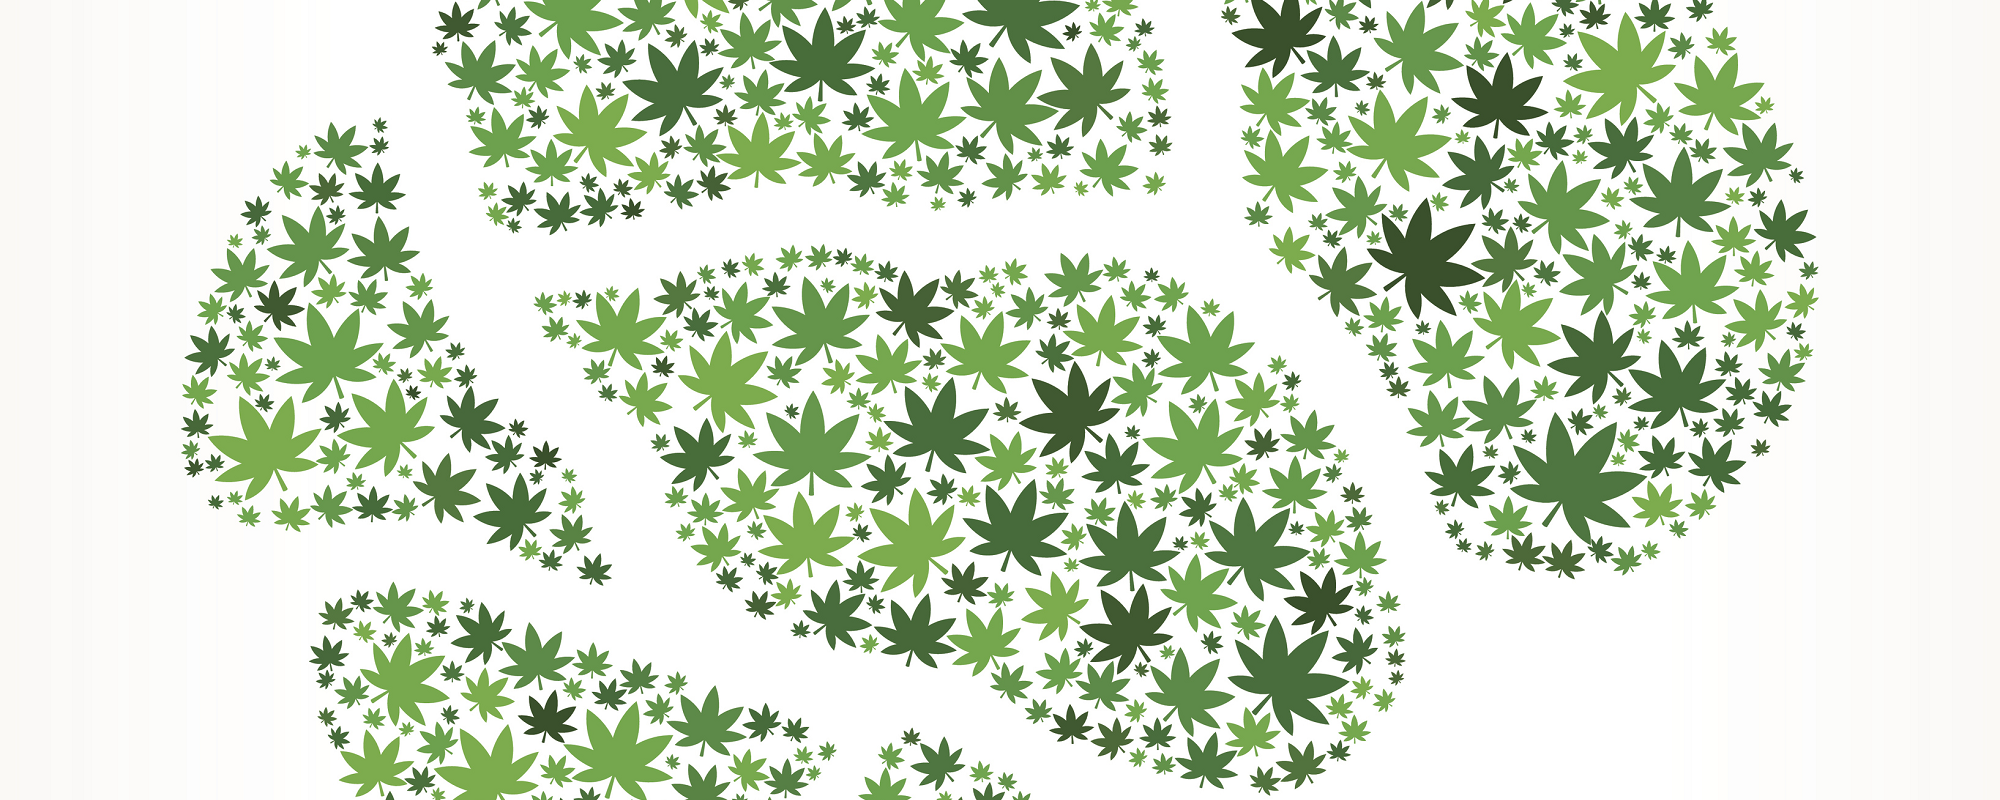 The Implications of Cannabidiol and the Brain